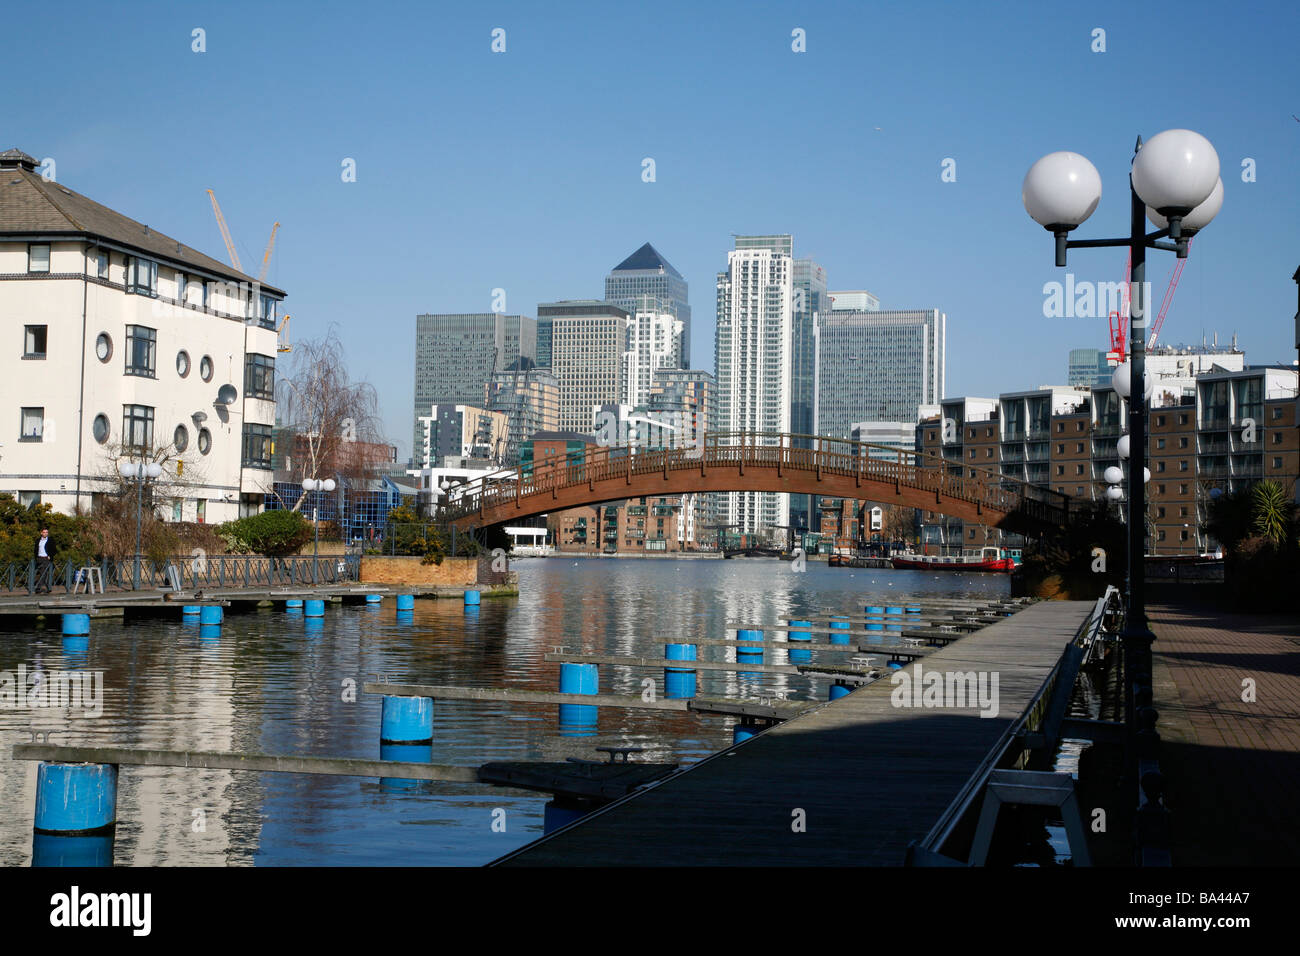 View of Canary Wharf from Millwall Outer Dock, Millwall, Isle of Dogs, London - Stock Image